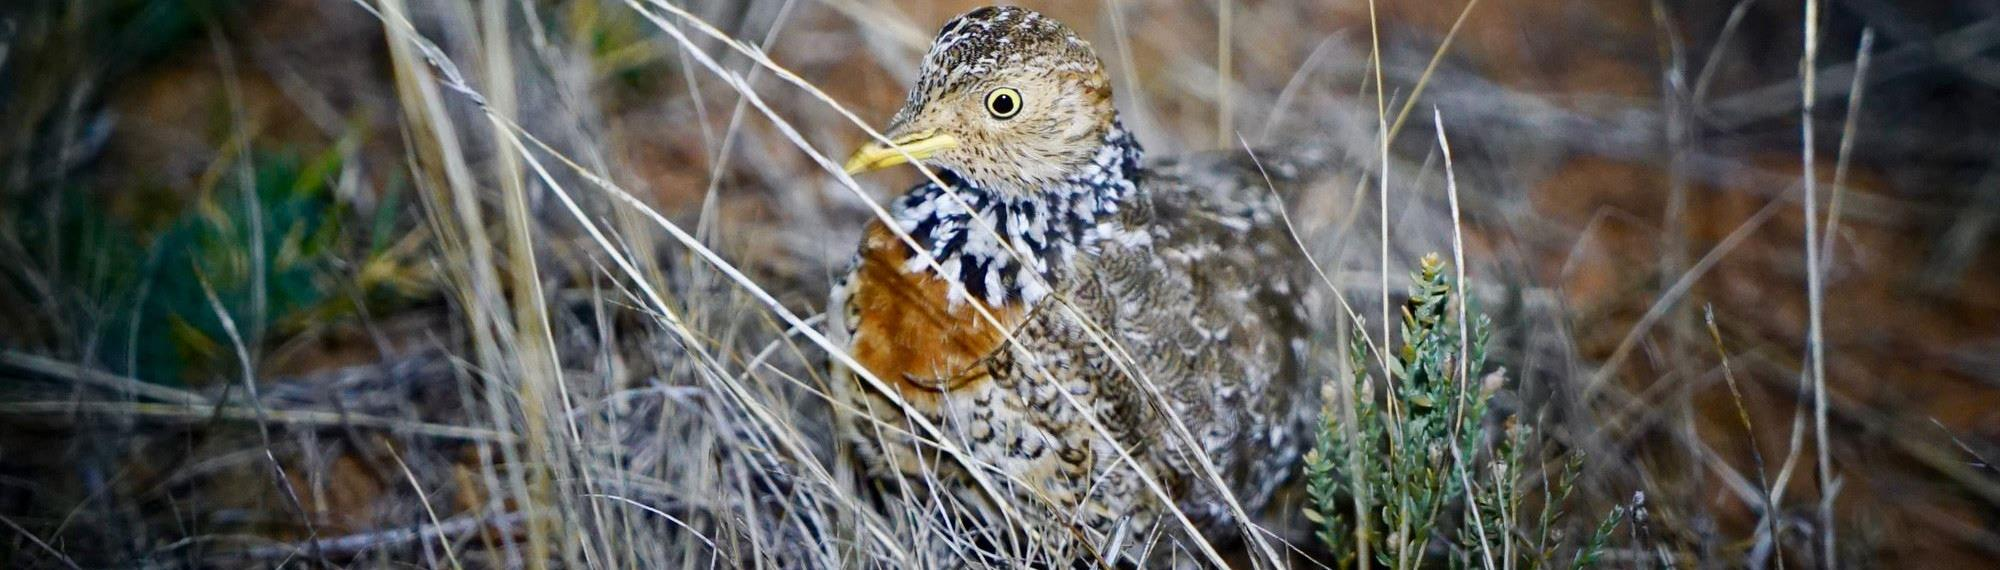 Plains Wanderer bird standing in dry grass. Side view of bird, with its body camouflaged in the grass,  looking toward camera.